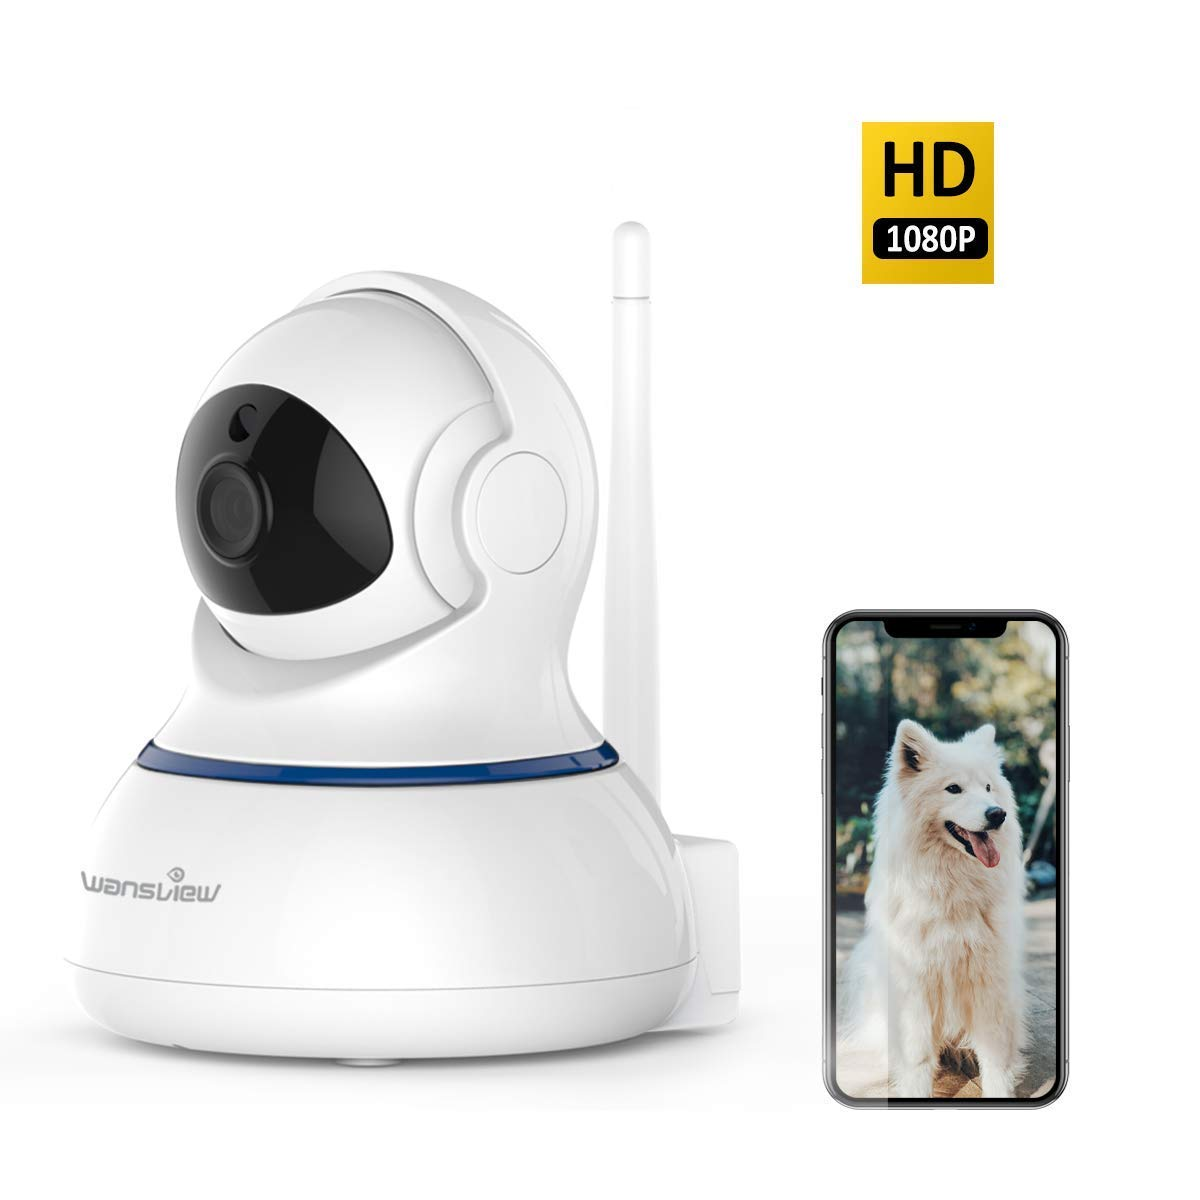 Best 6 Wansview Seller Wireless Home IP Cameras Security ...